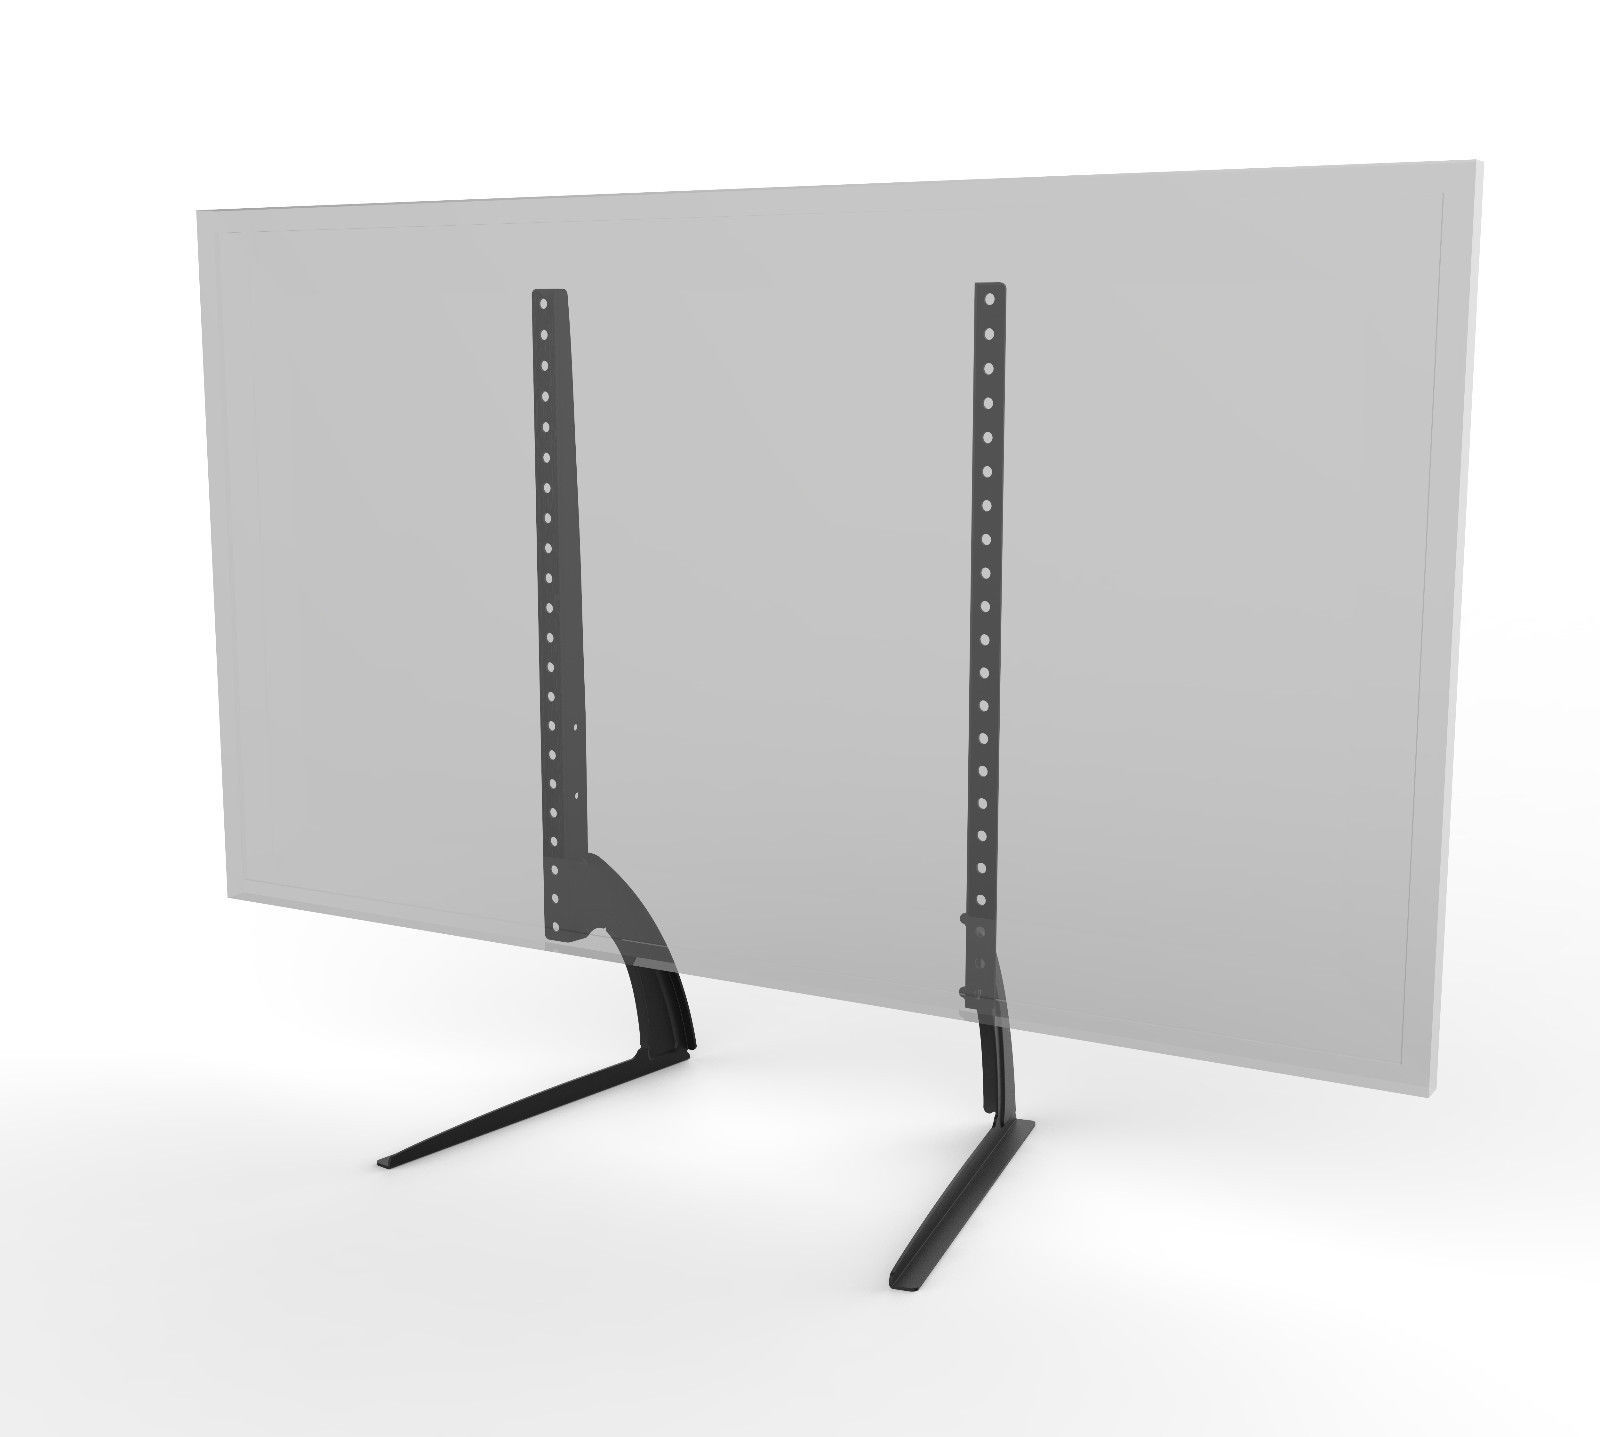 Universal Table Top TV Stand Legs for JVC LT-49EM75 Height Adjustable